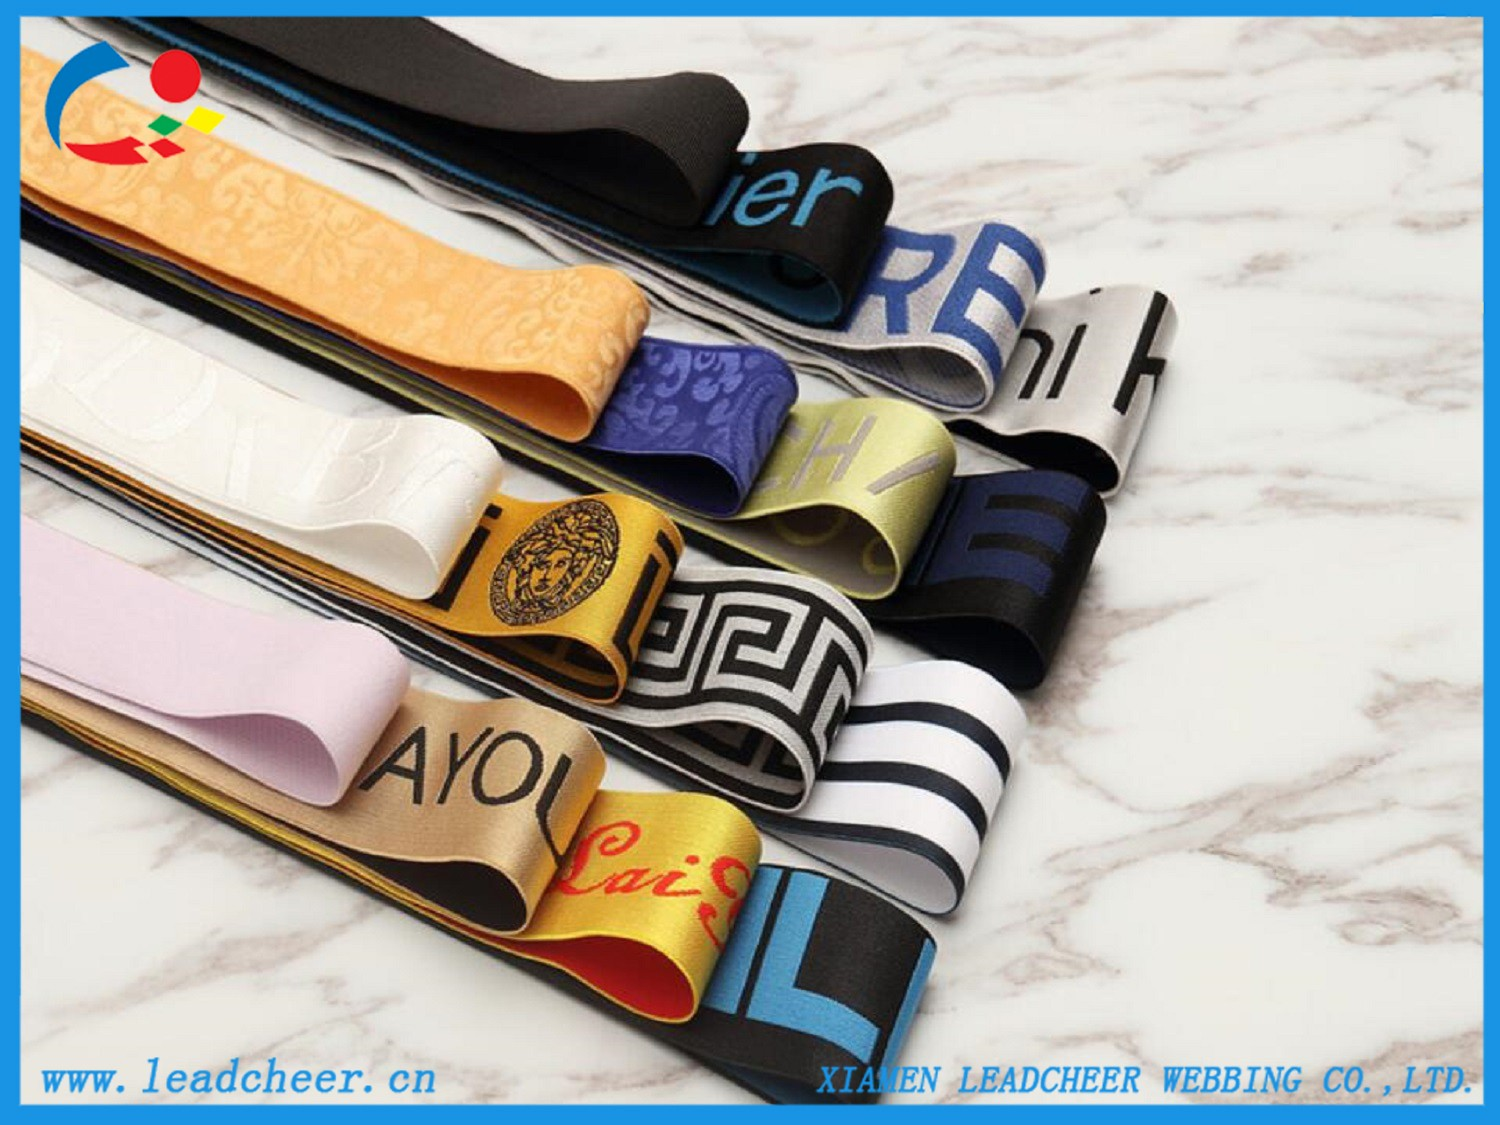 High quality Comfortable Beautiful Polyamide Bra Elastic band Shoulder Strap Quotes,China Comfortable Beautiful Polyamide Bra Elastic band Shoulder Strap Factory,Comfortable Beautiful Polyamide Bra Elastic band Shoulder Strap Purchasing